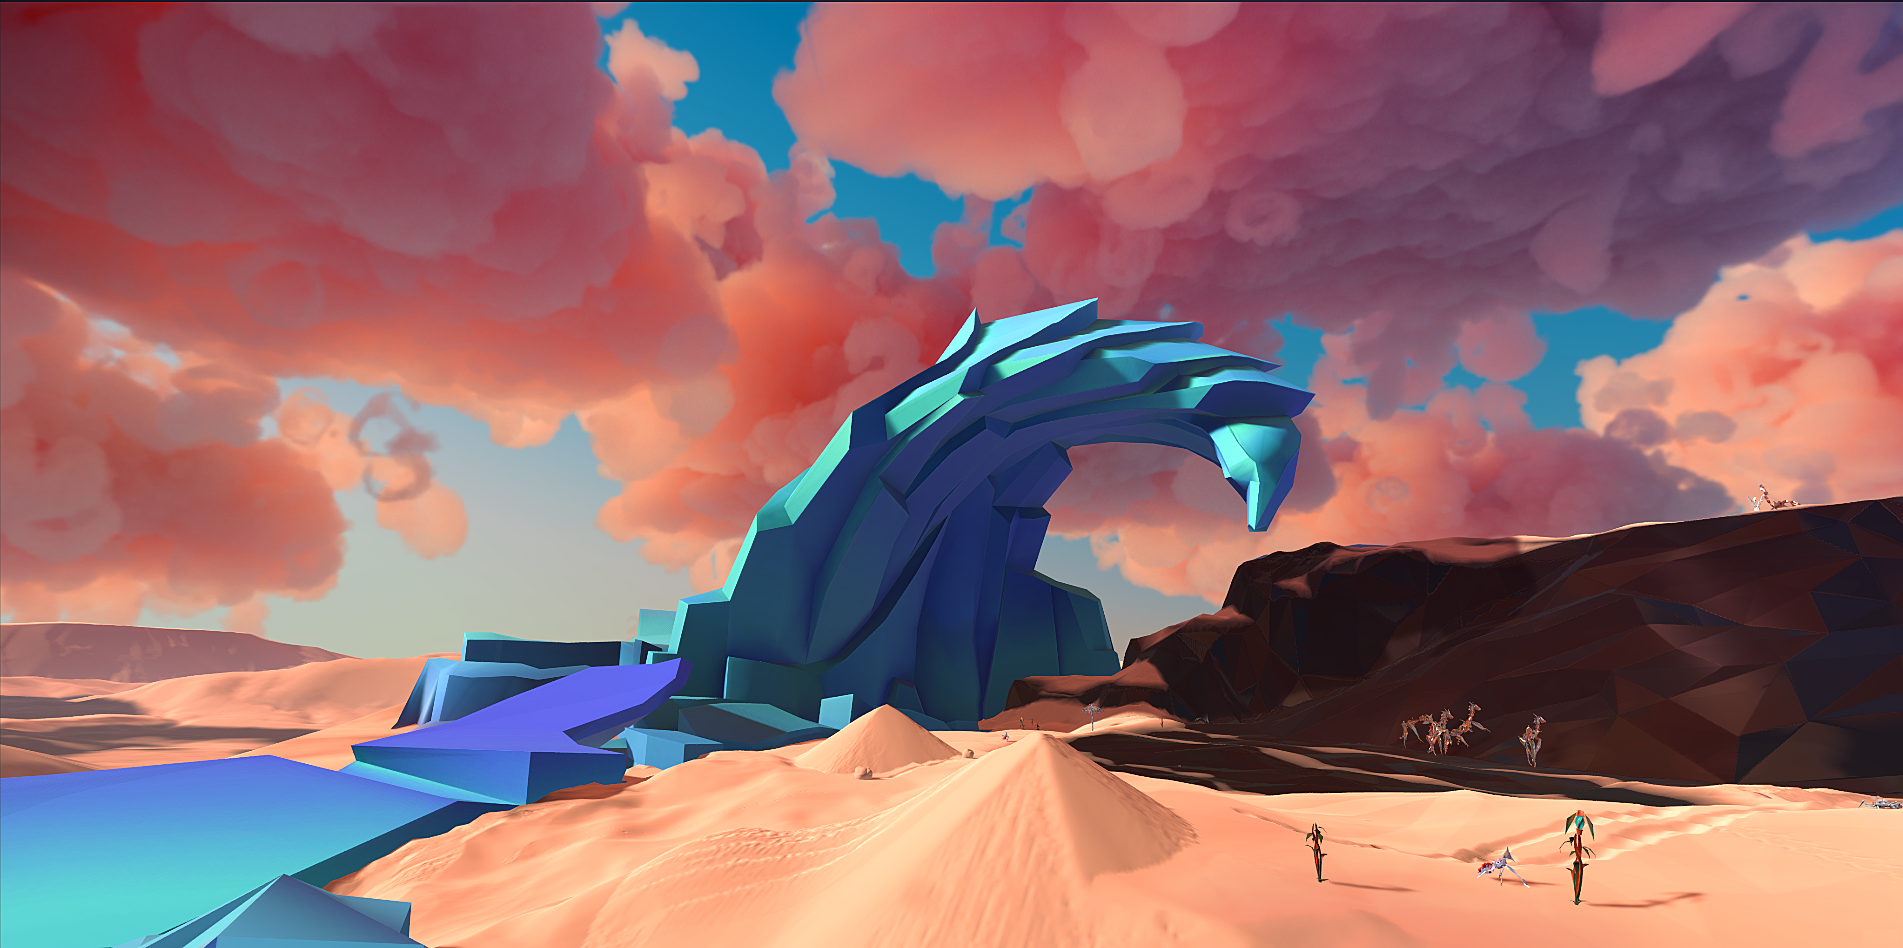 paper beast, eric chahi, another world, psvr, sony, ps4, playstation 4, upload vr, vr